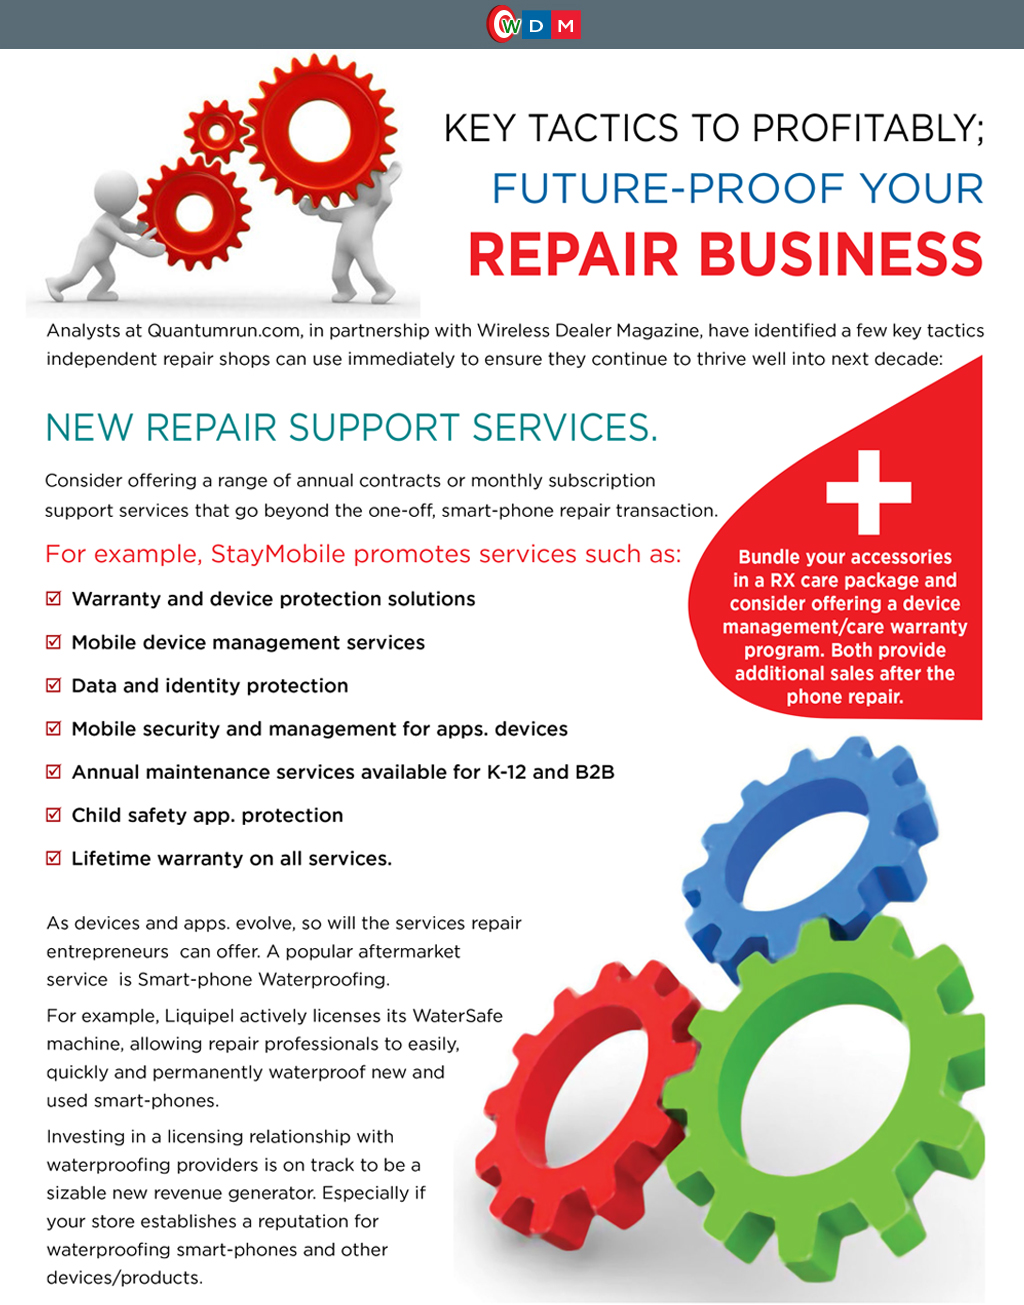 Key Tactics to Profitably: Future-Proof Your Repair Business